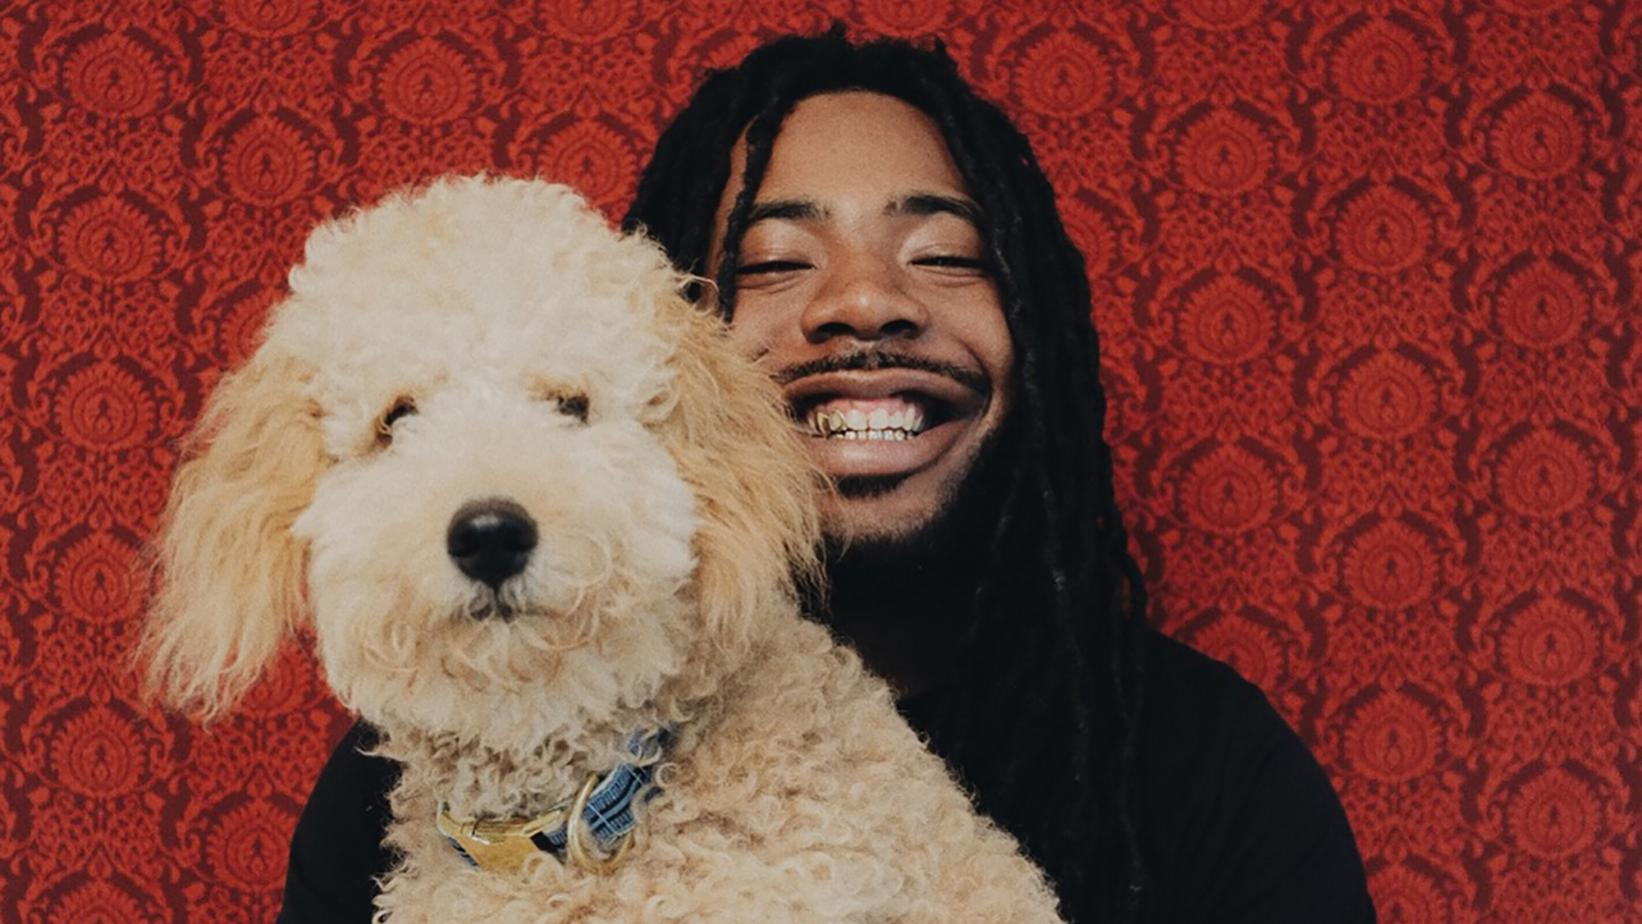 DRAM photographed with his dog Idnit